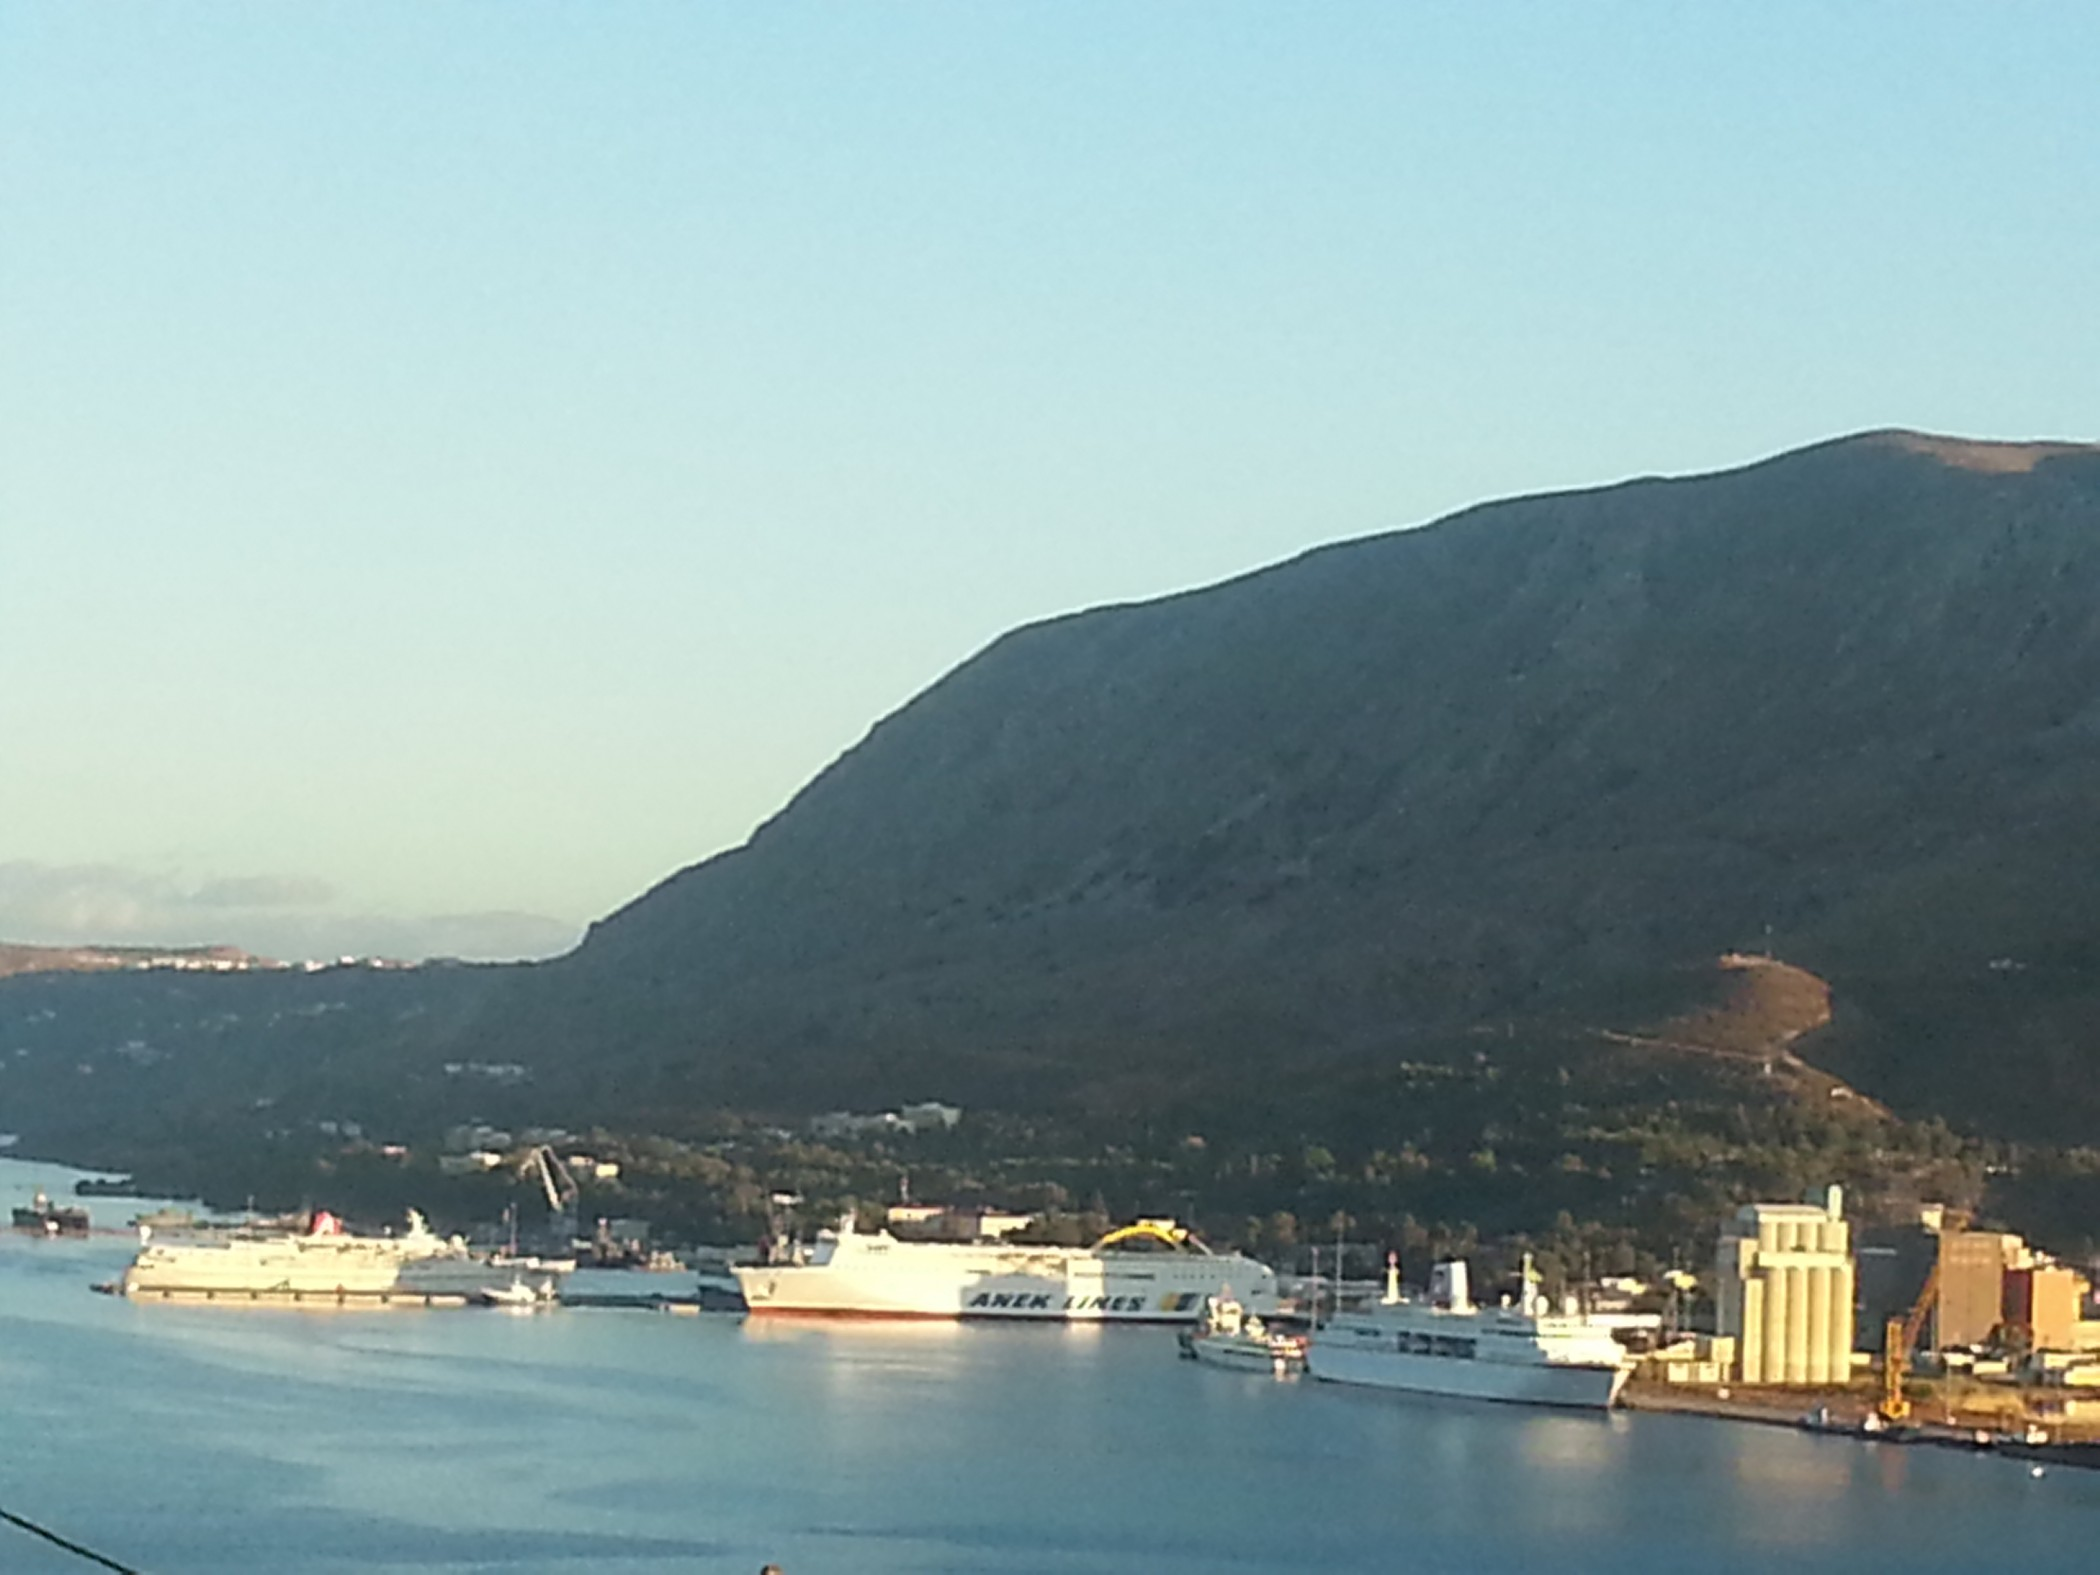 Souda Port, 8112013, afternoon